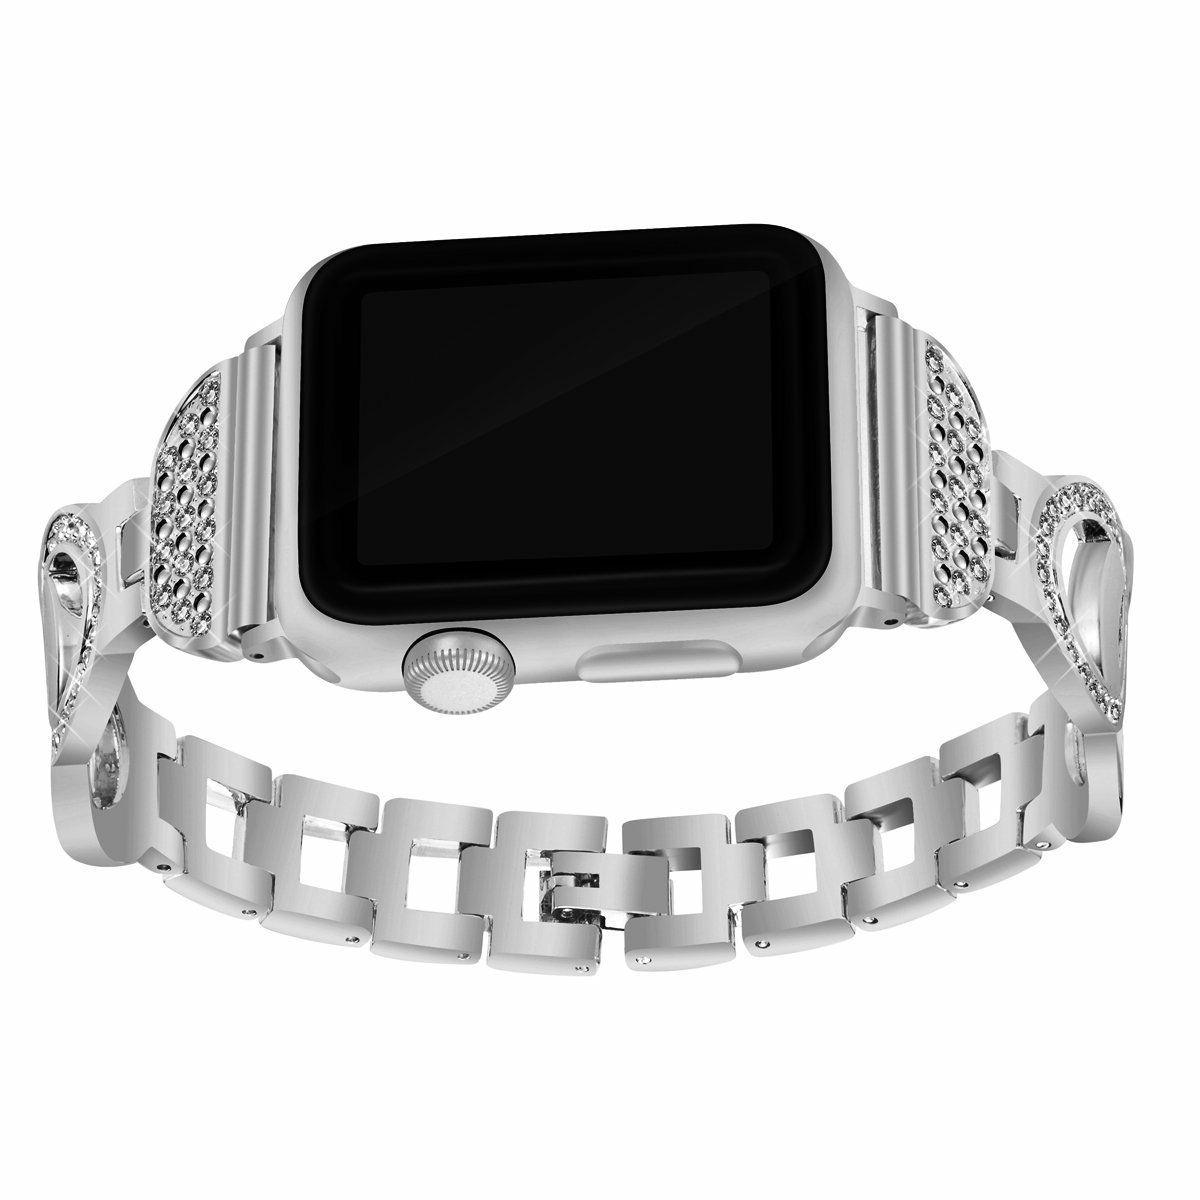 iWatch steel Band 42mm Apple Series 3 Edition